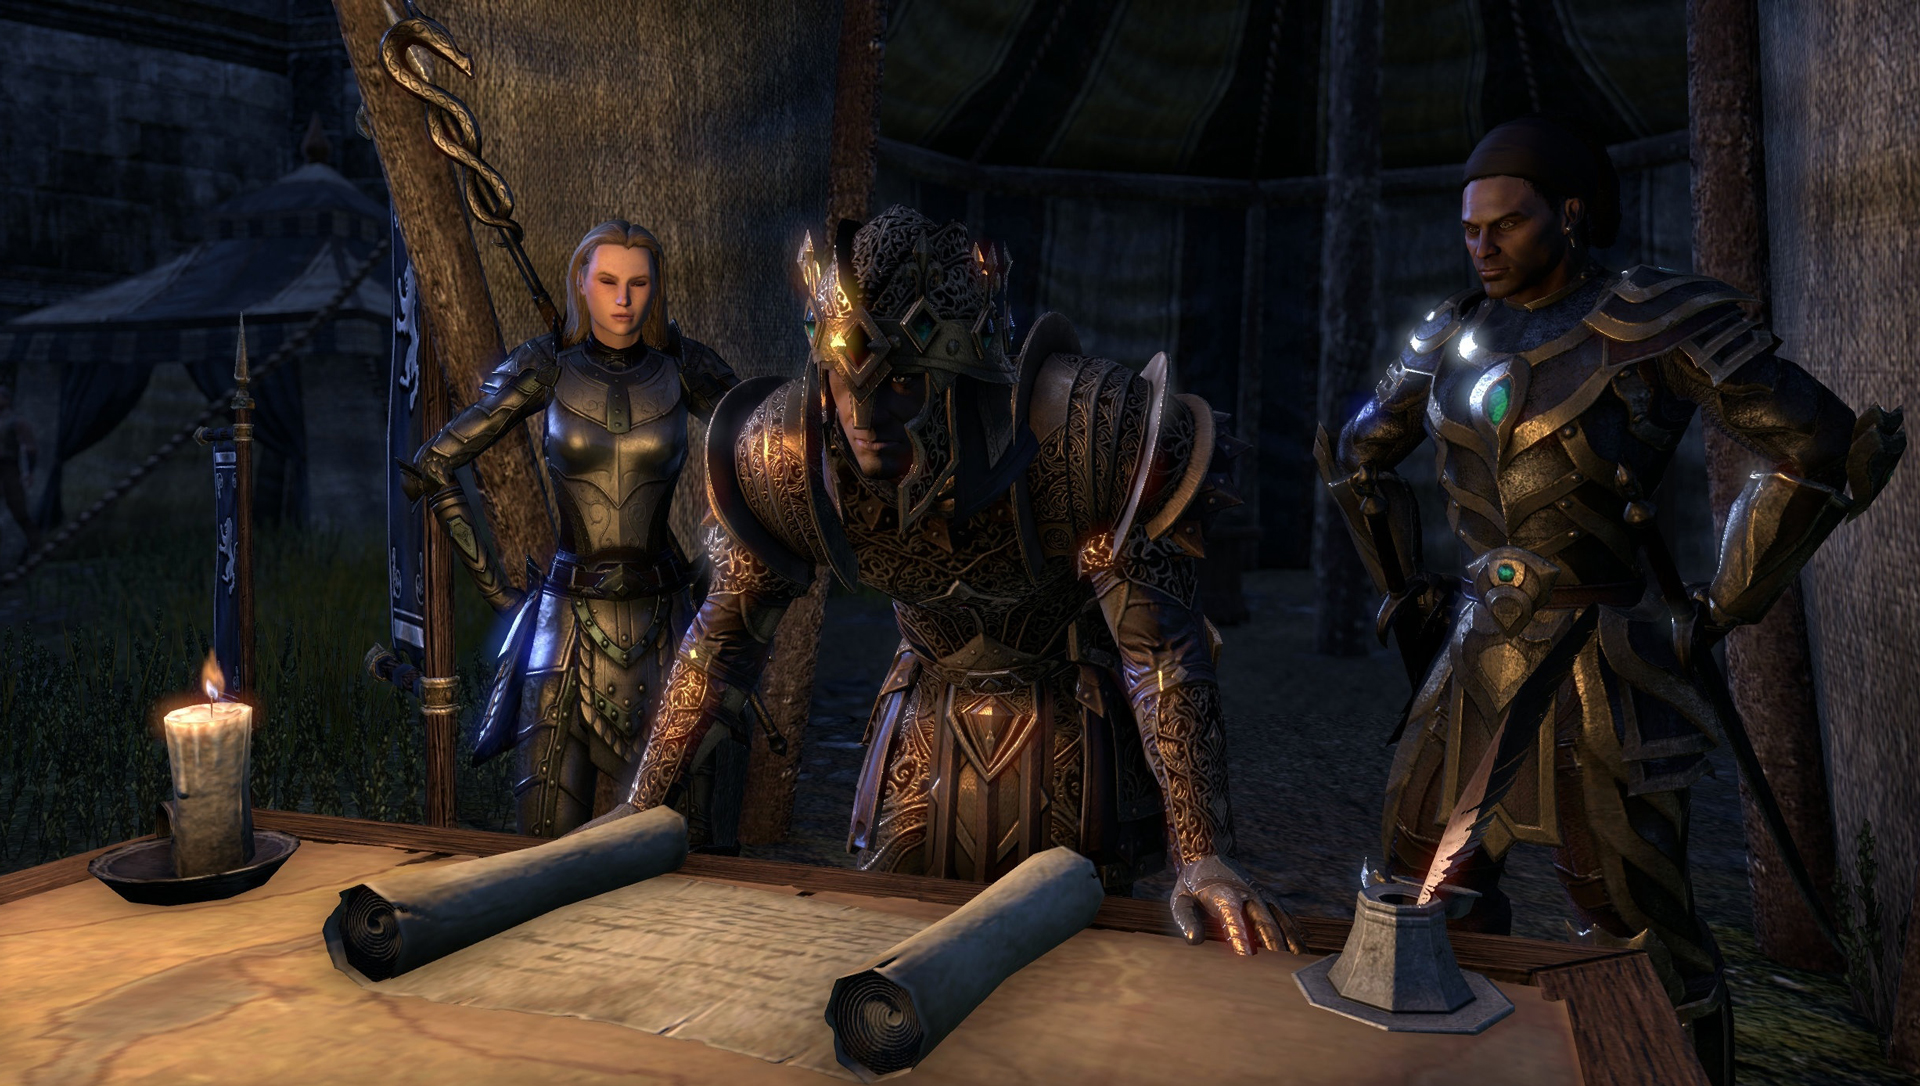 Review: The Elder Scrolls Online (PC) - GameAxis